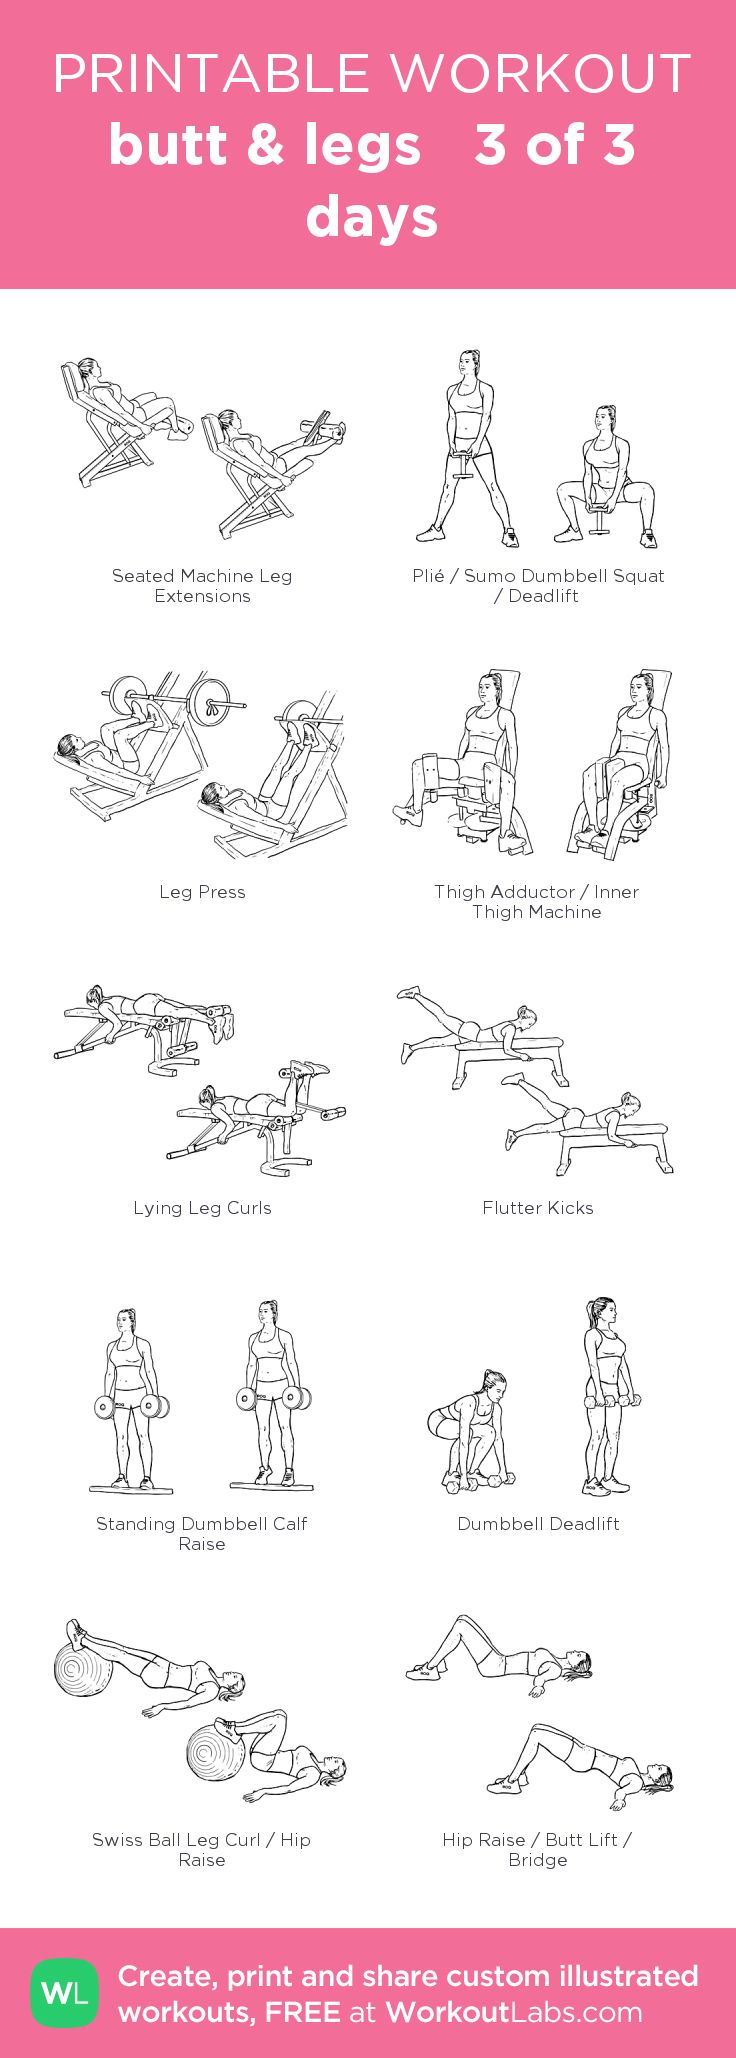 butt & legs  3 of 3 days:my custom printable workout by @WorkoutLabs #workoutlabs #customworkout